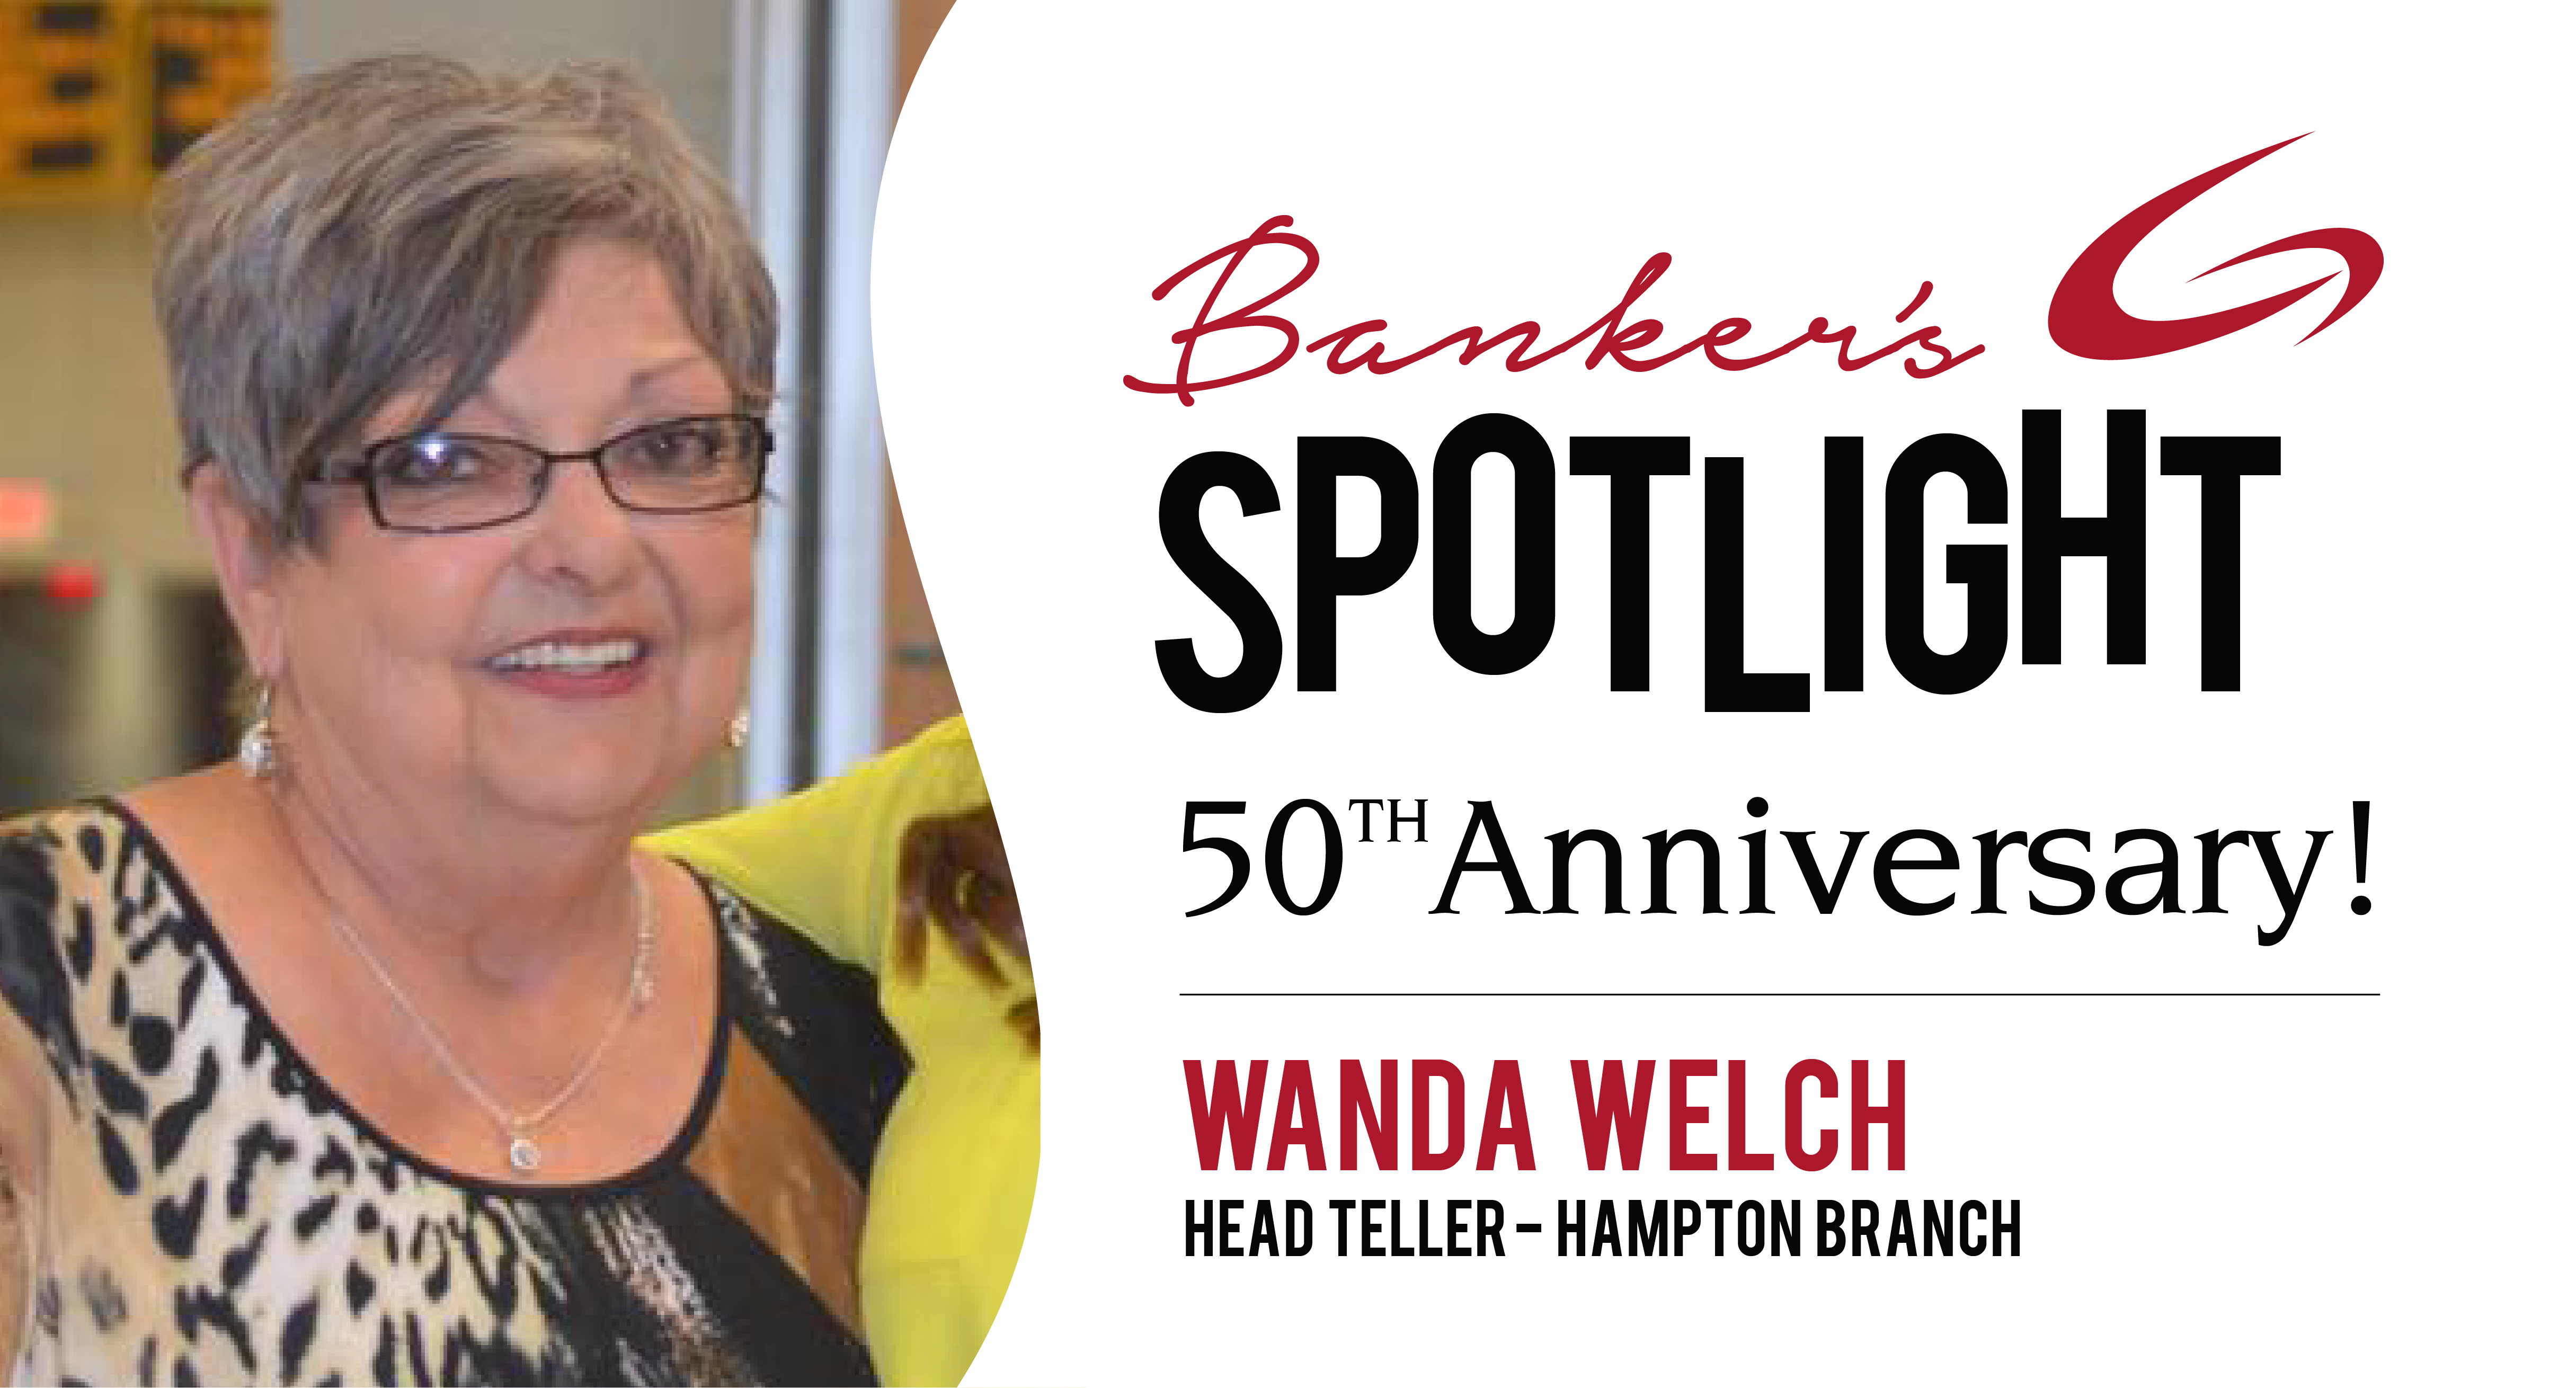 Banker's Spotlight - Wanda Welch - Celebrating 50 years!